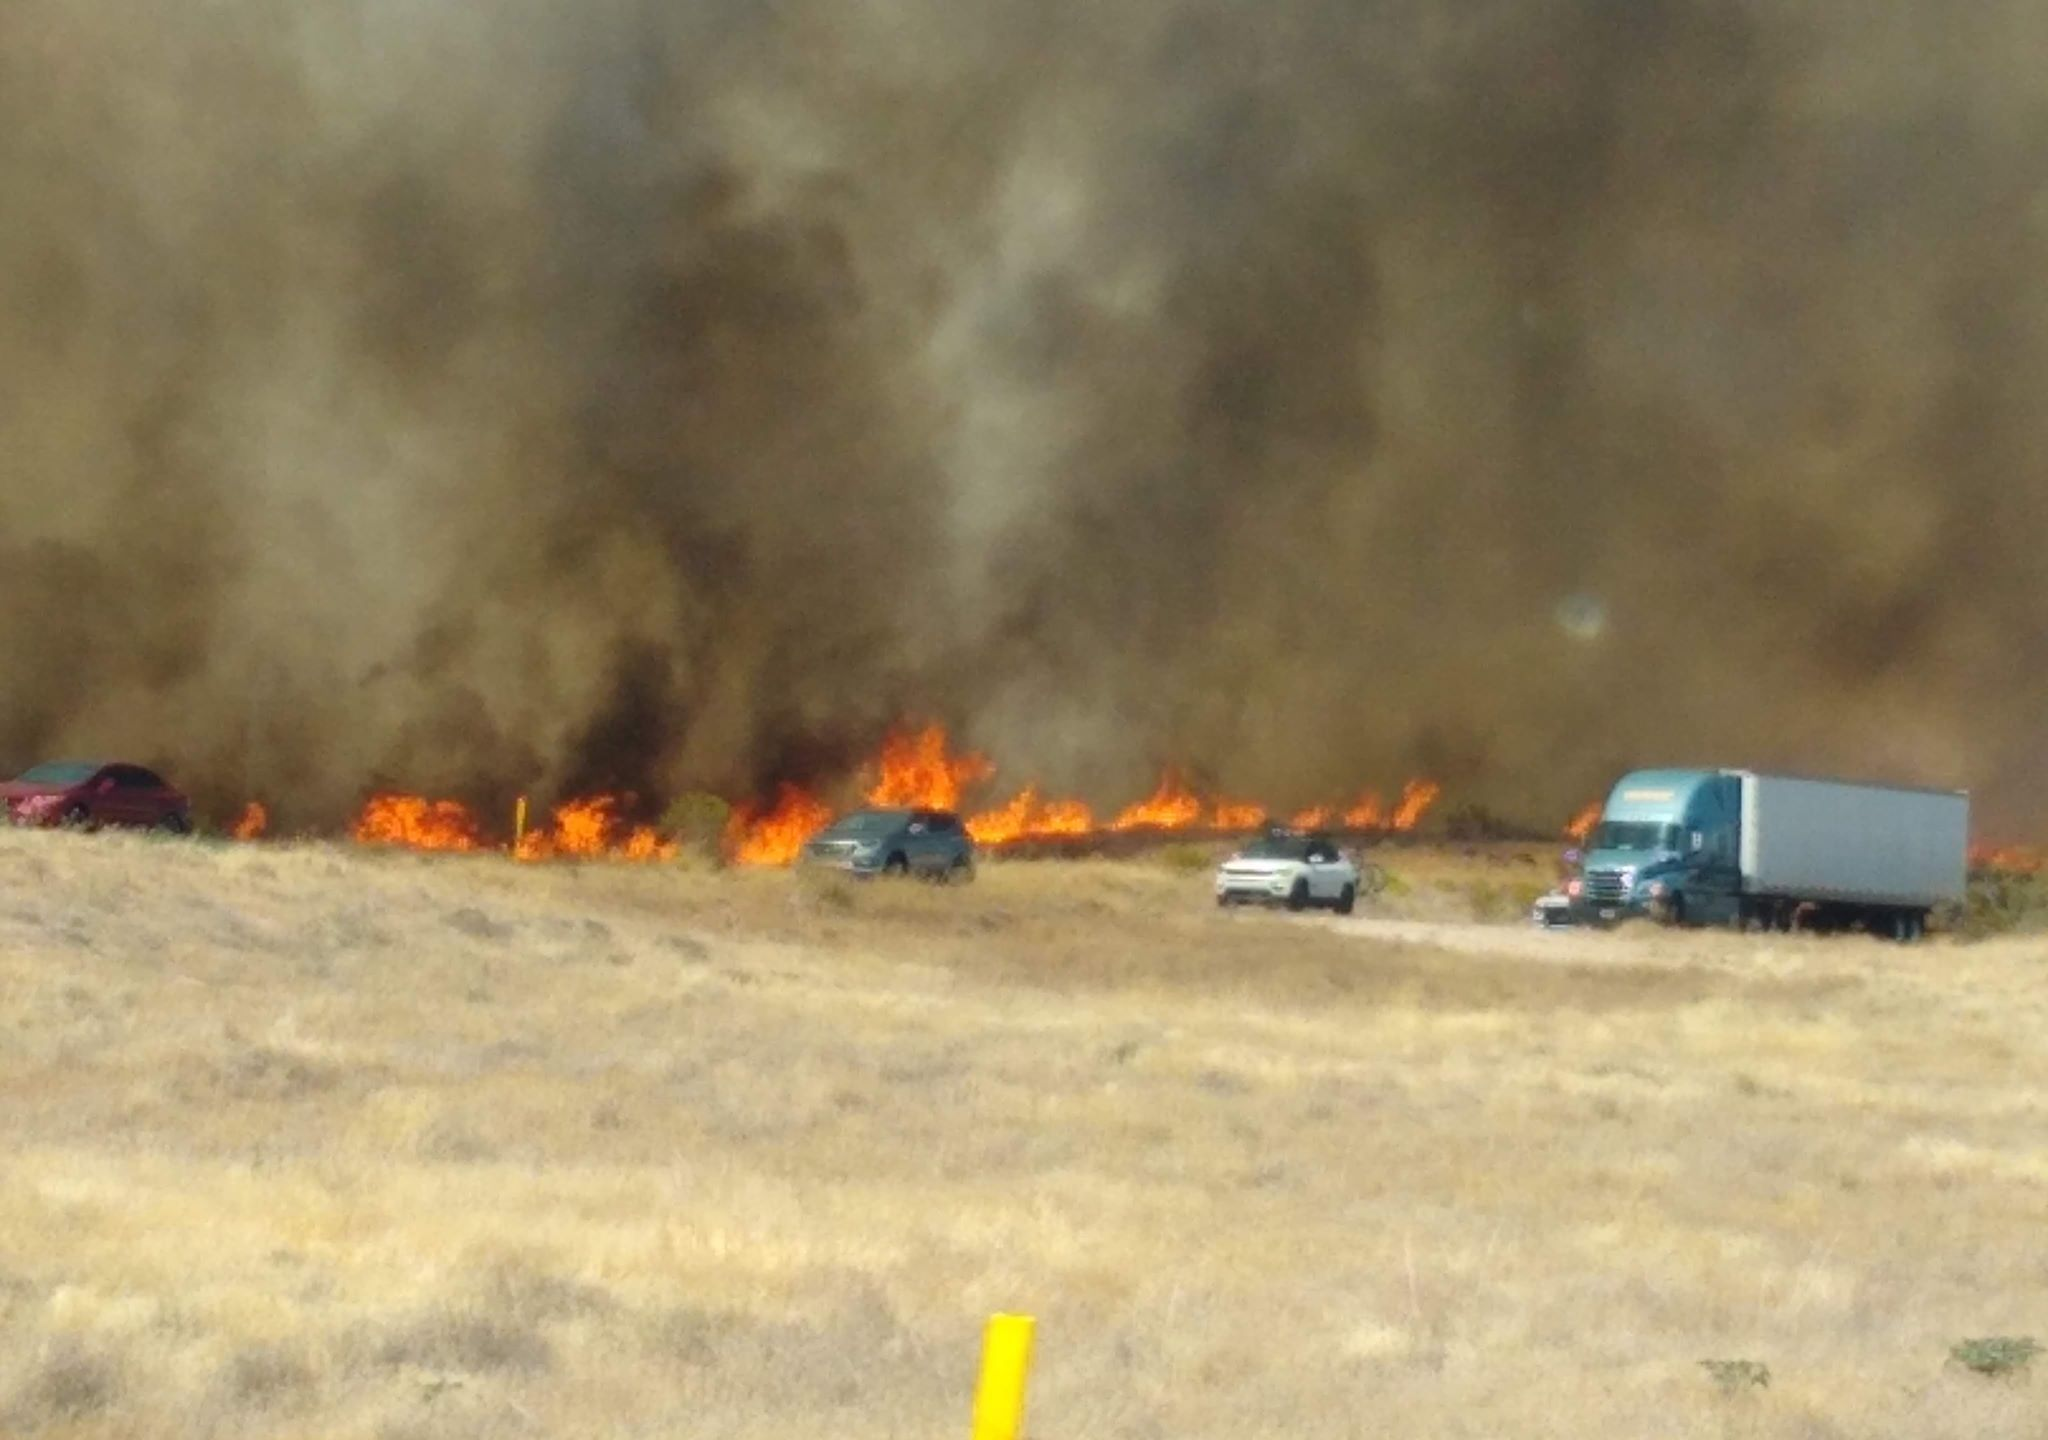 Cottonwood Trail Fire in Washington County threatening homes and roadways near Leeds, Sunday, July 19, 2020.